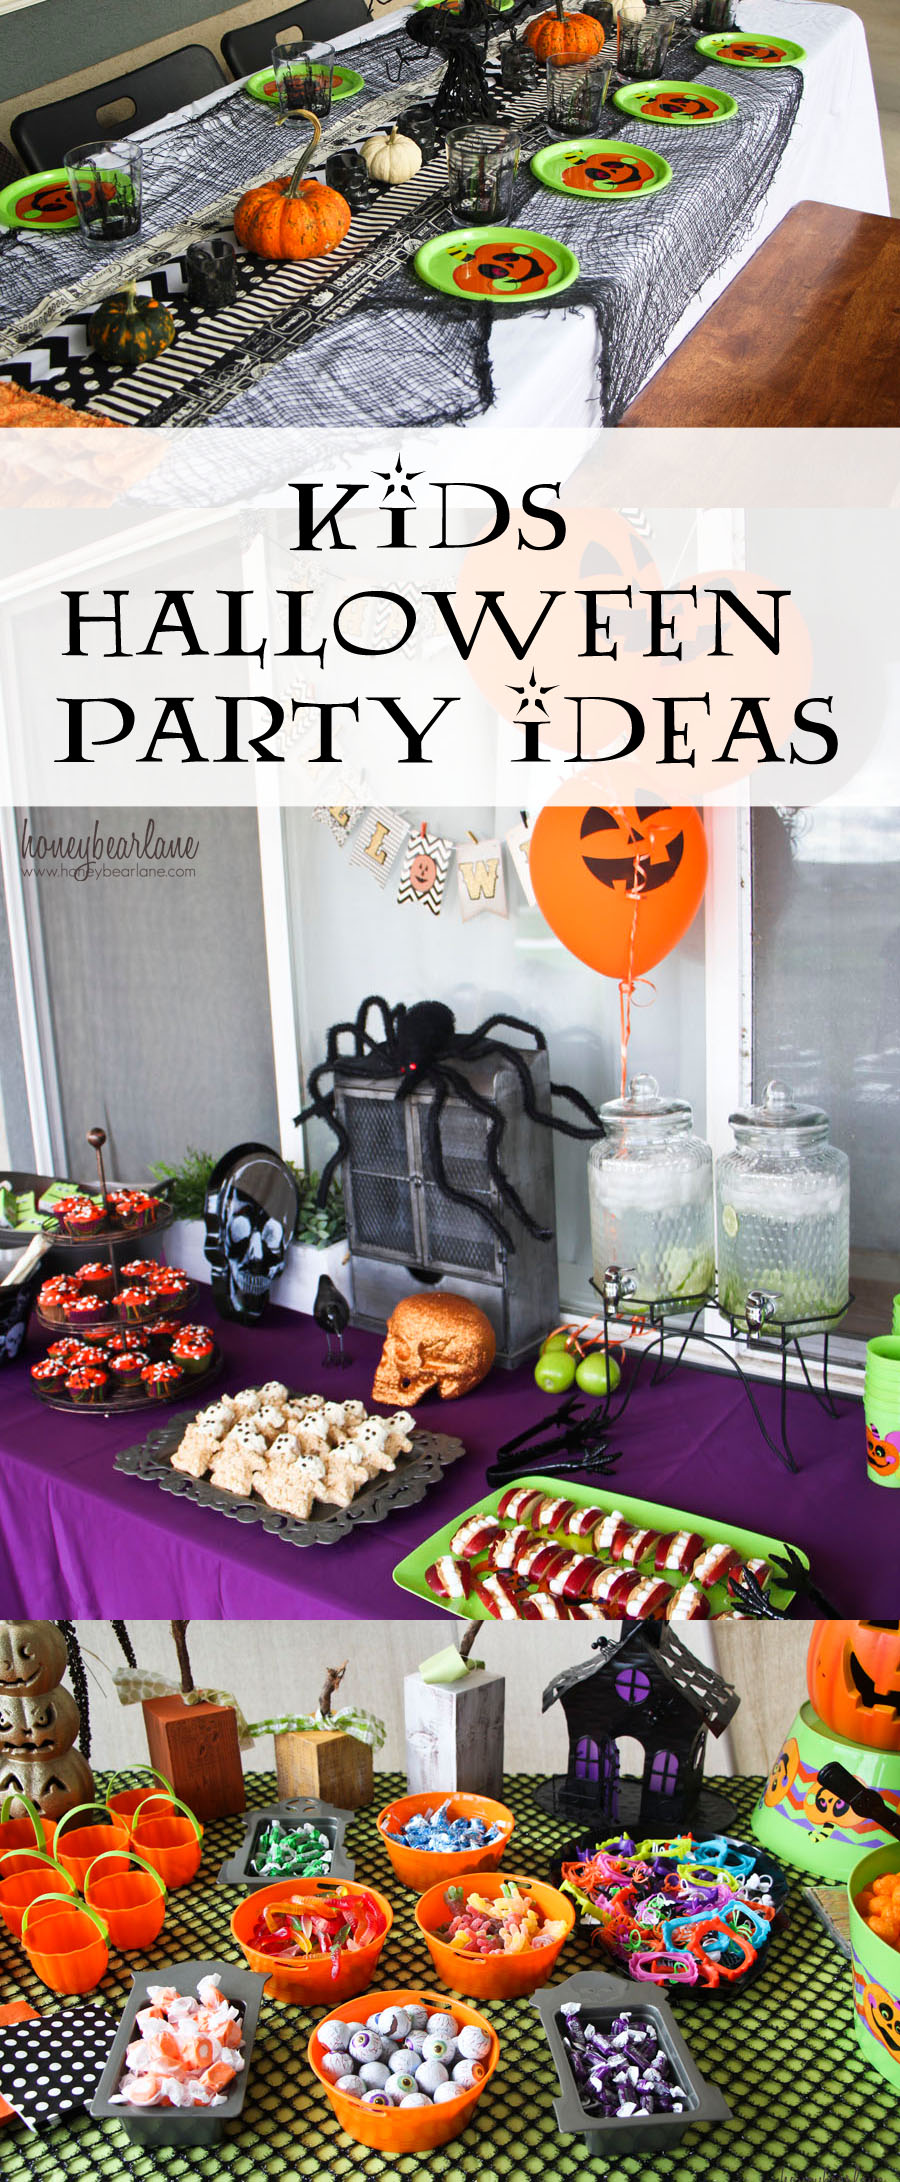 Check out these easy Halloween crafts ideas for kids of all ages. These fun DIY Halloween decorations for kids to make are perfect for upcoming school parties, holiday get-togethers, and more.